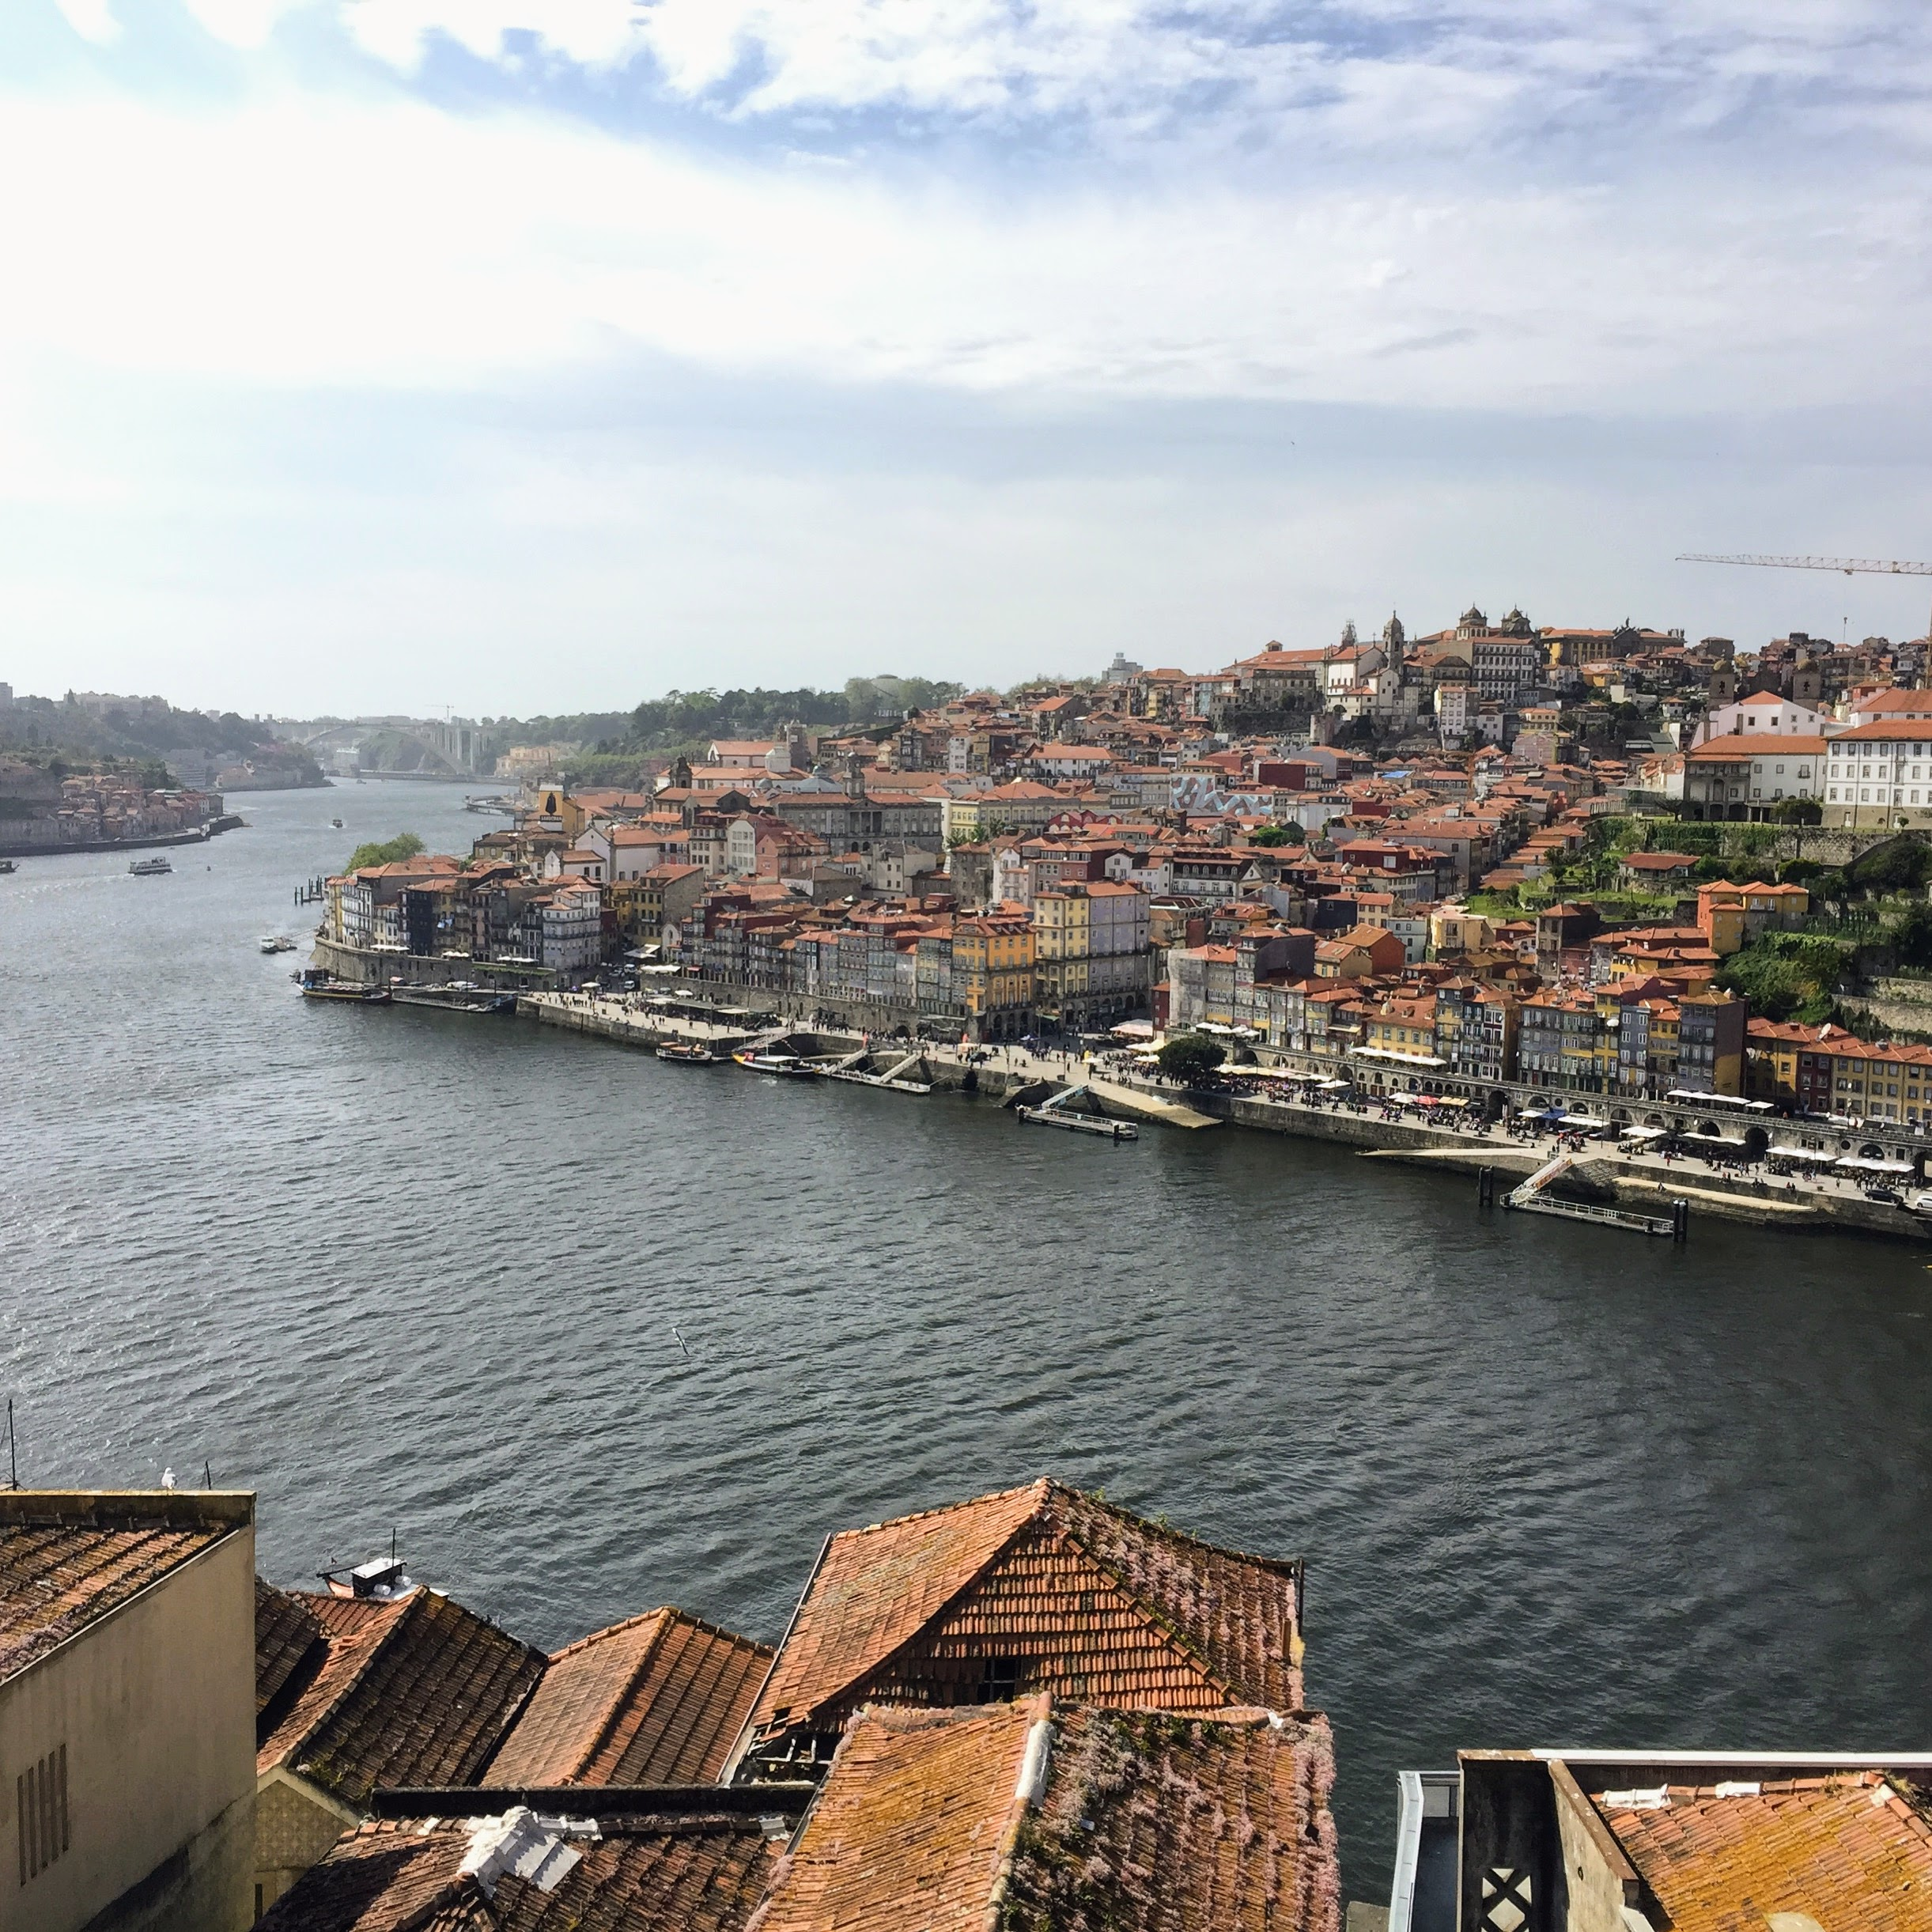 The city of Porto and the Douro River.